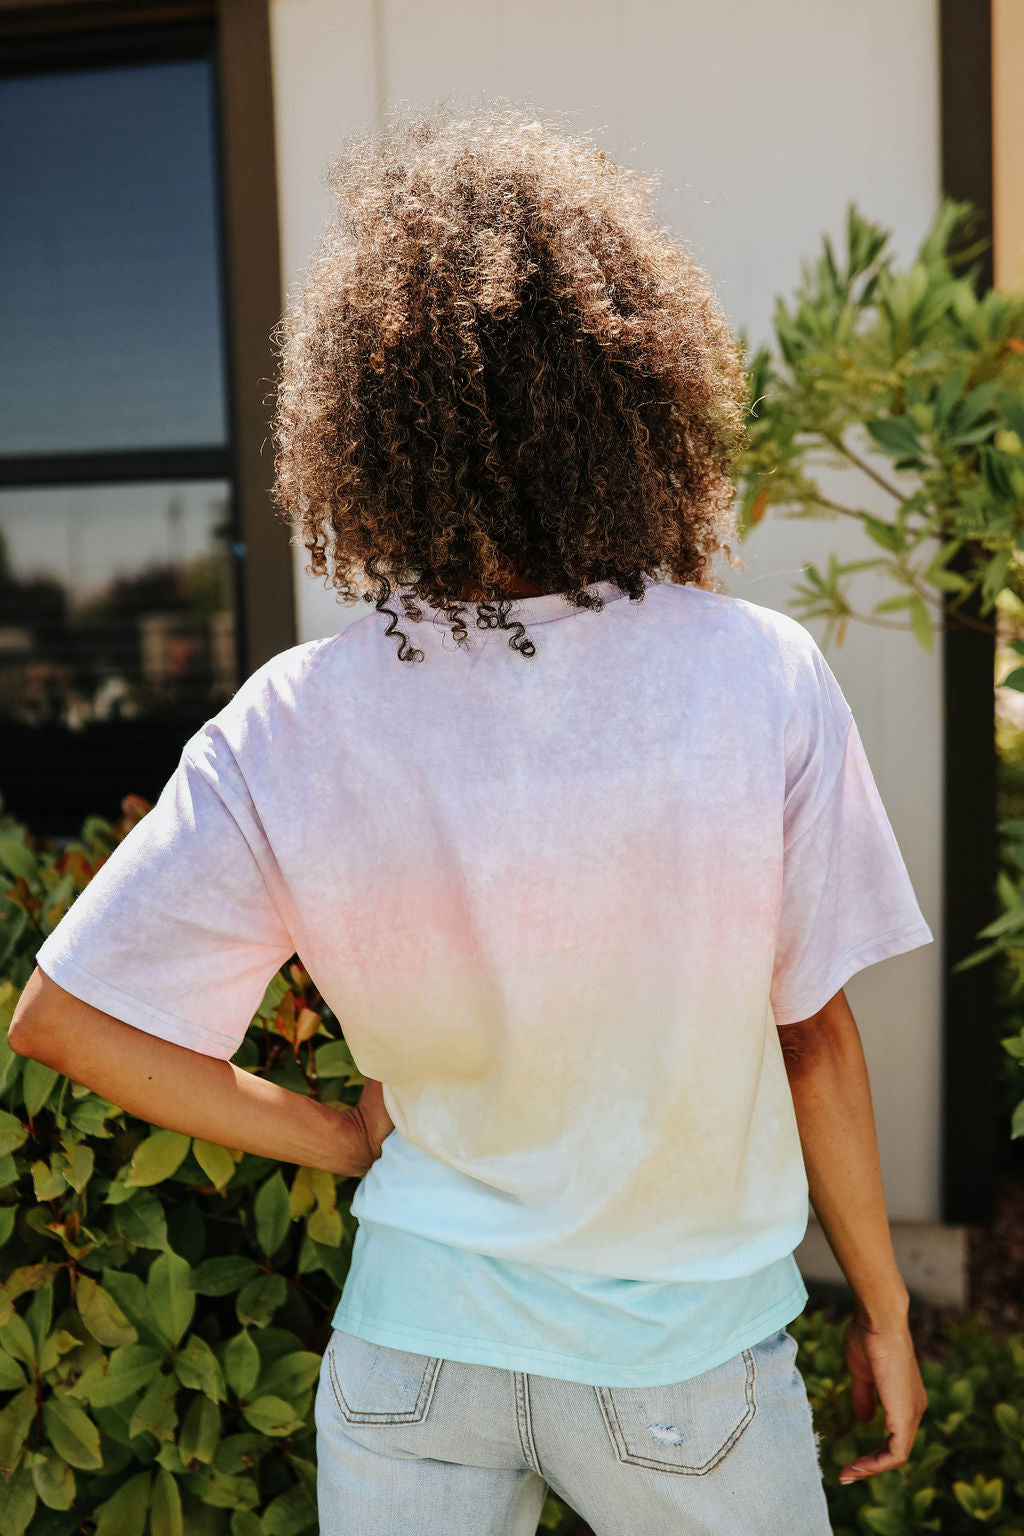 THE SUNSET TIE DYE TOP